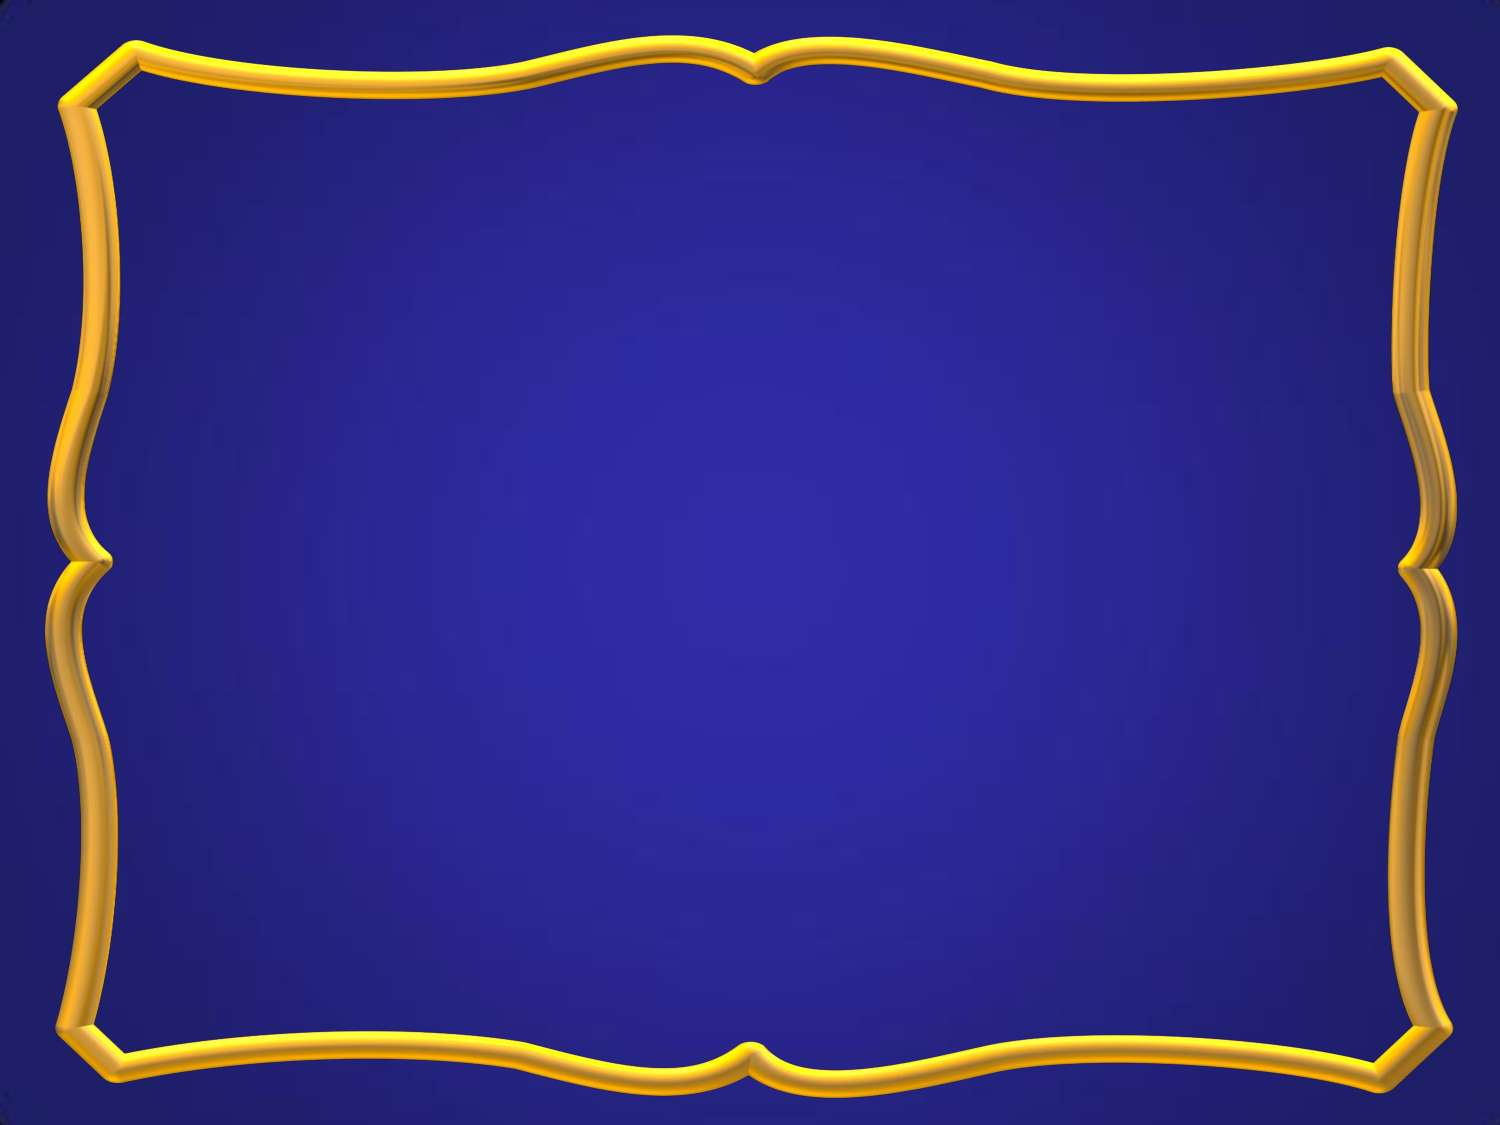 Blue gold frame Background Wallpaper for PowerPoint Presentations 1500x1125